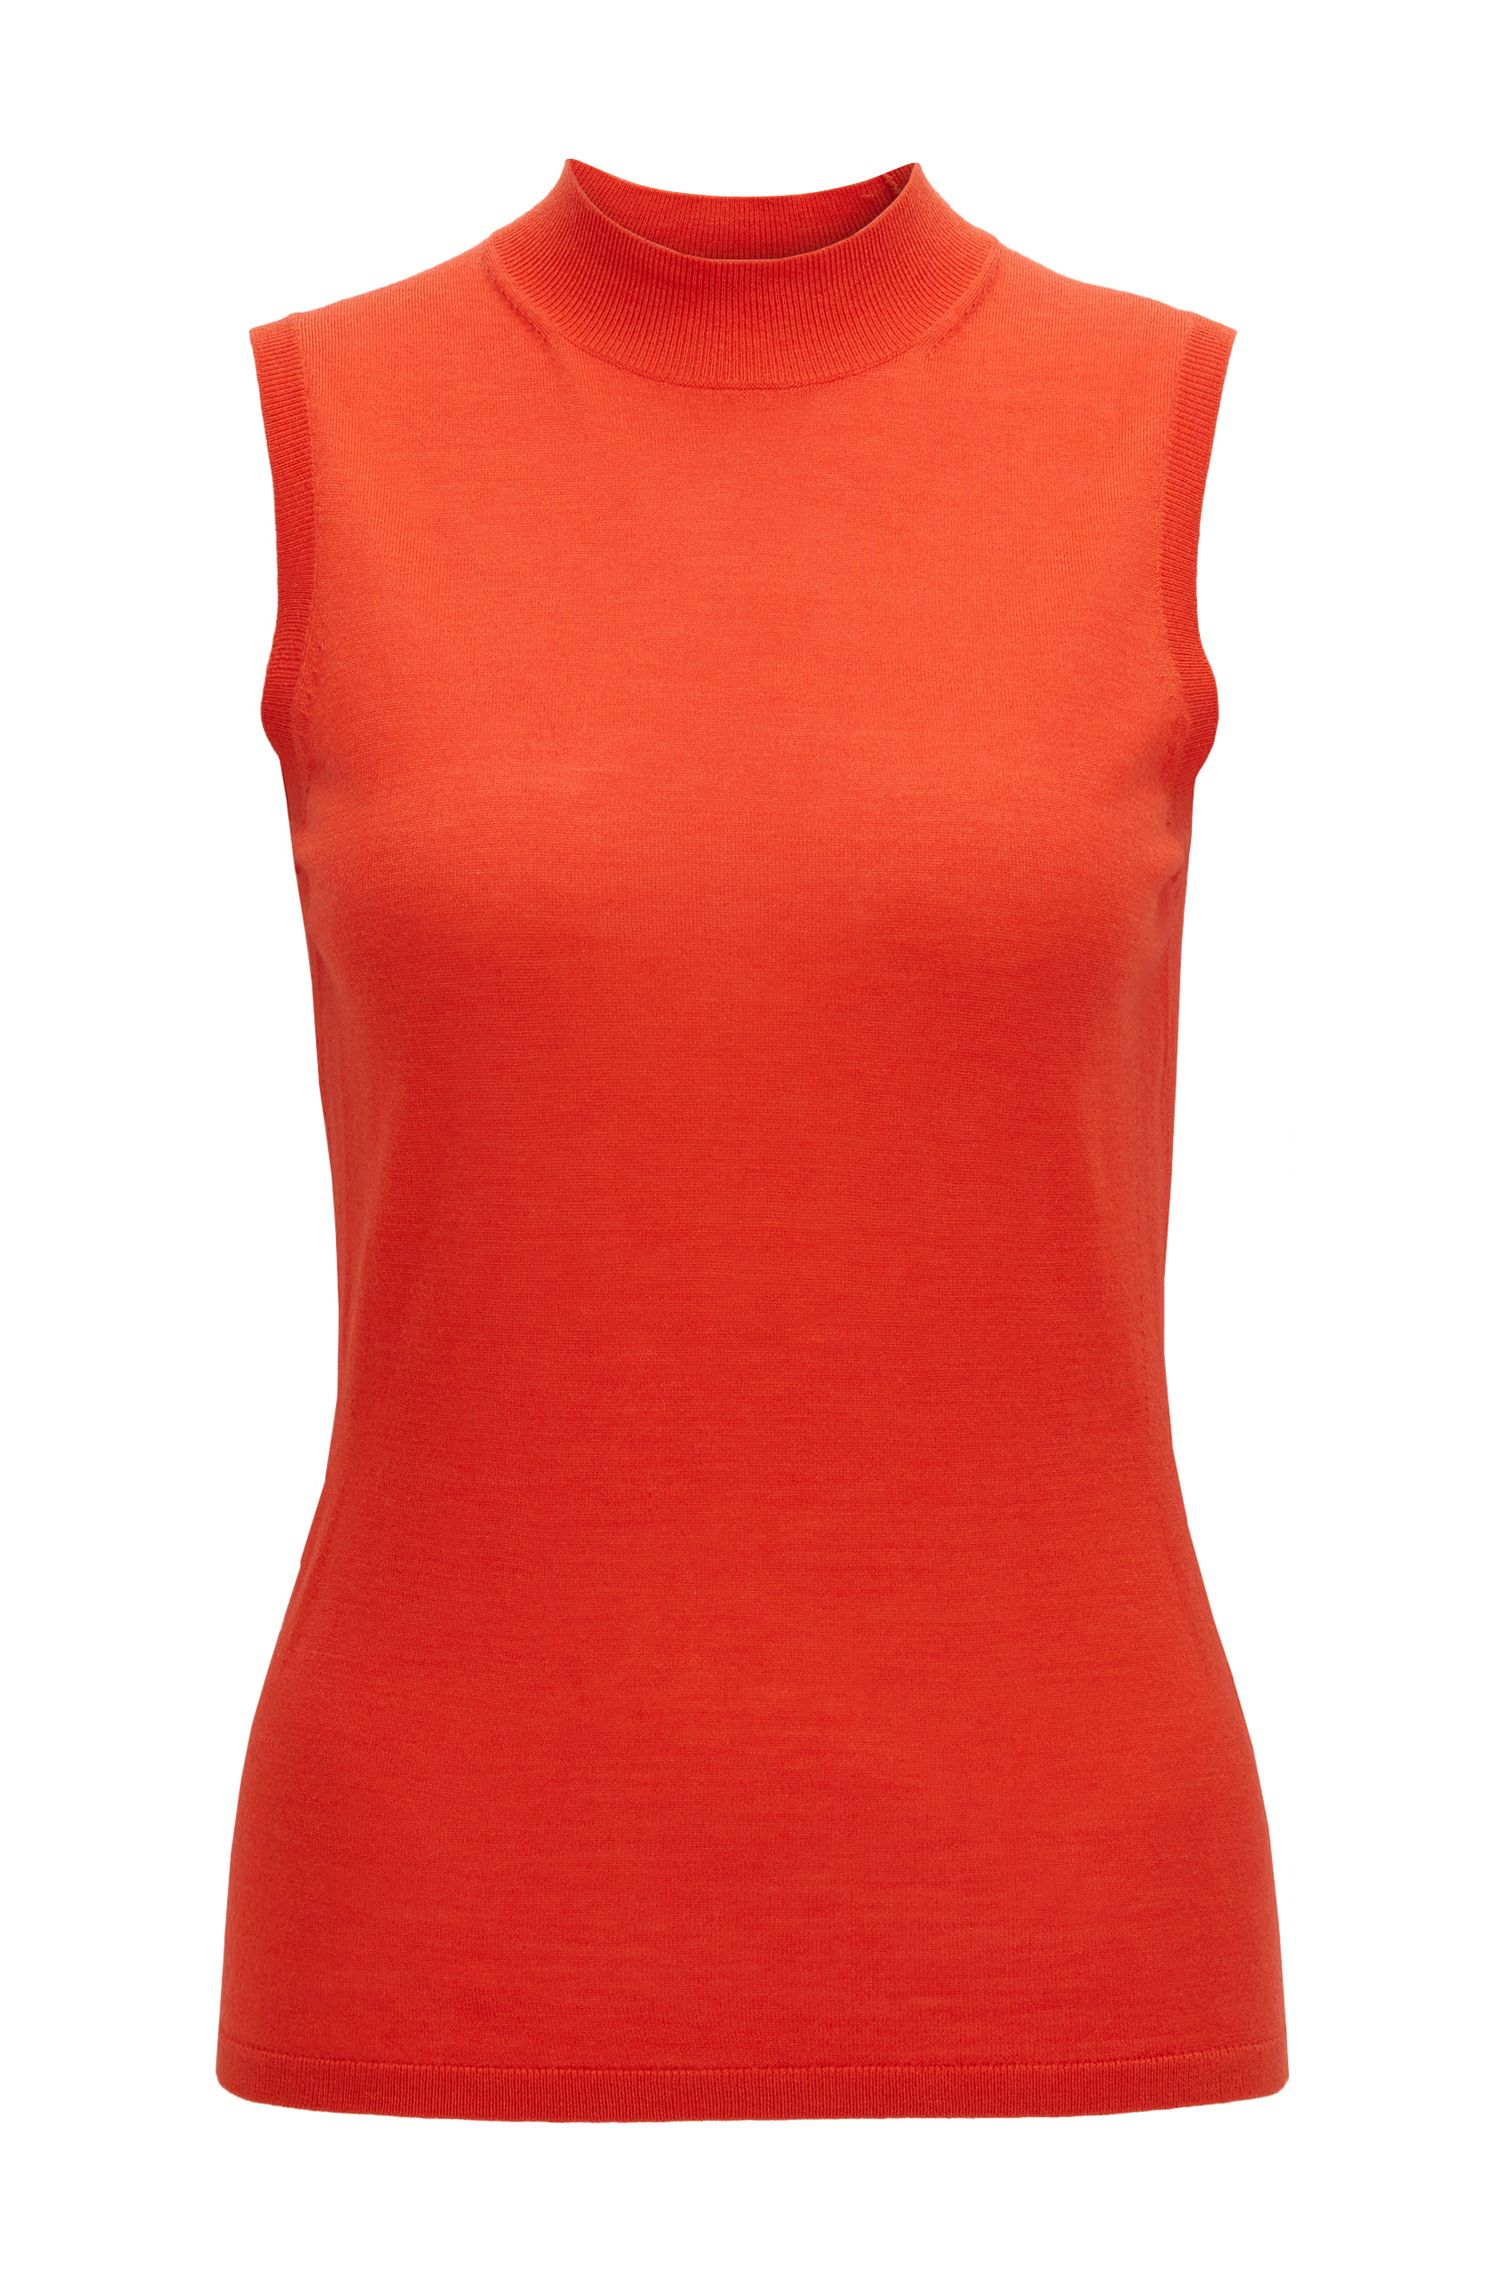 Sleeveless knitted top in mercerised virgin wool